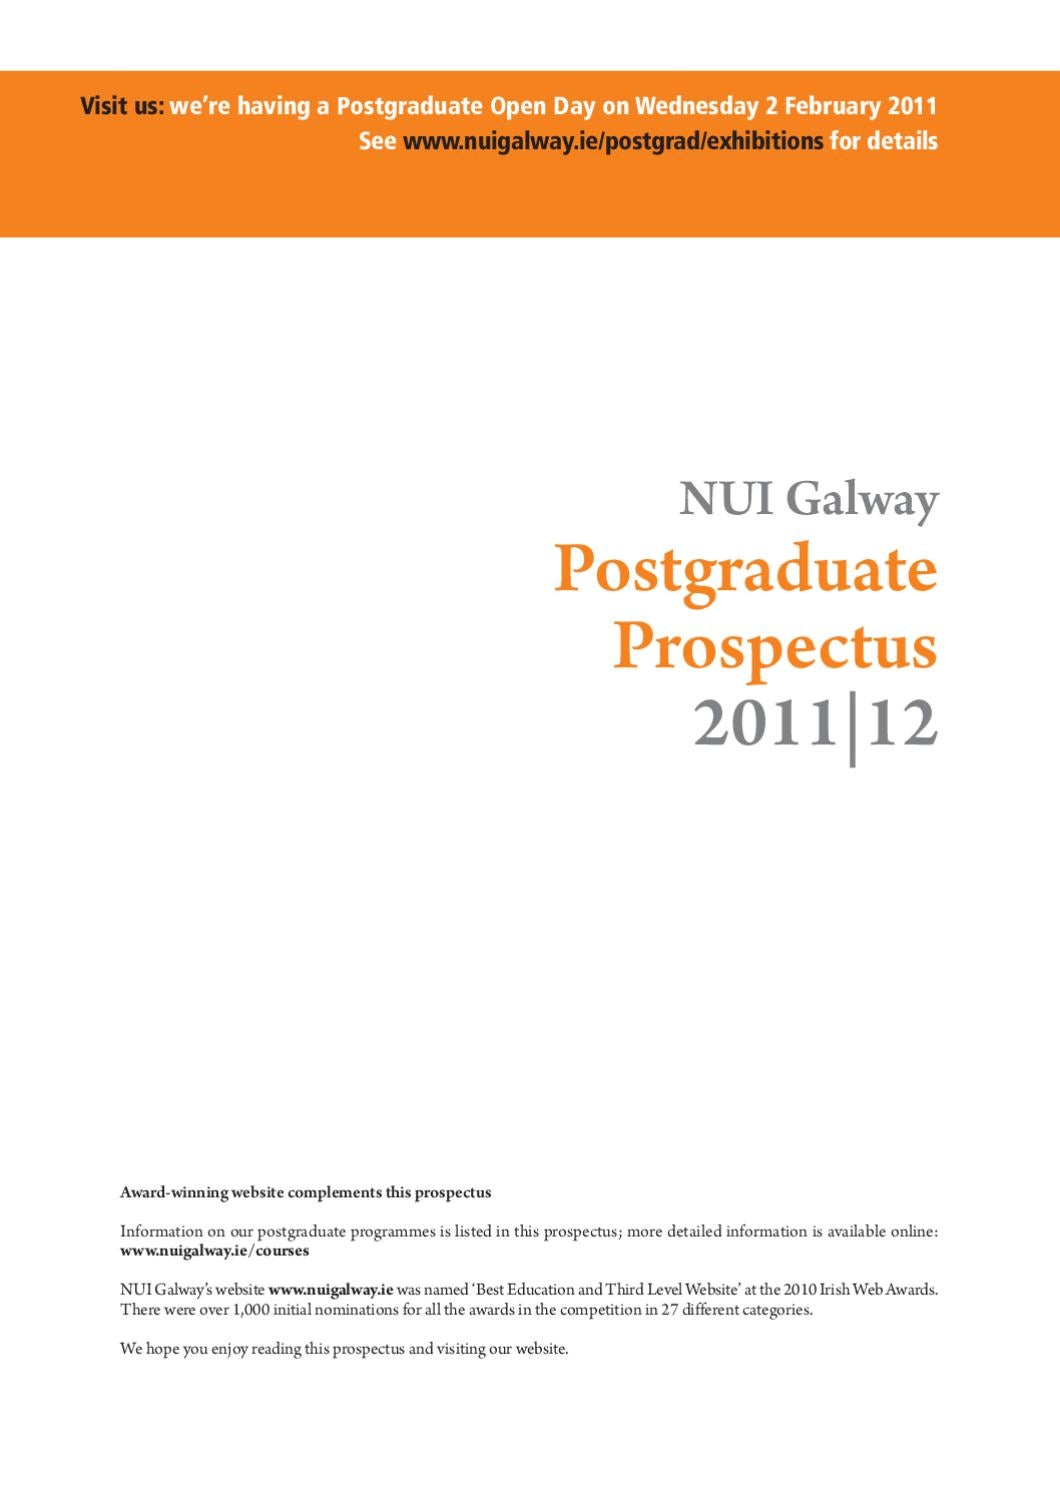 Nuigalway Postgraduate Prospectus By Nui Galway Inofficial Issuu